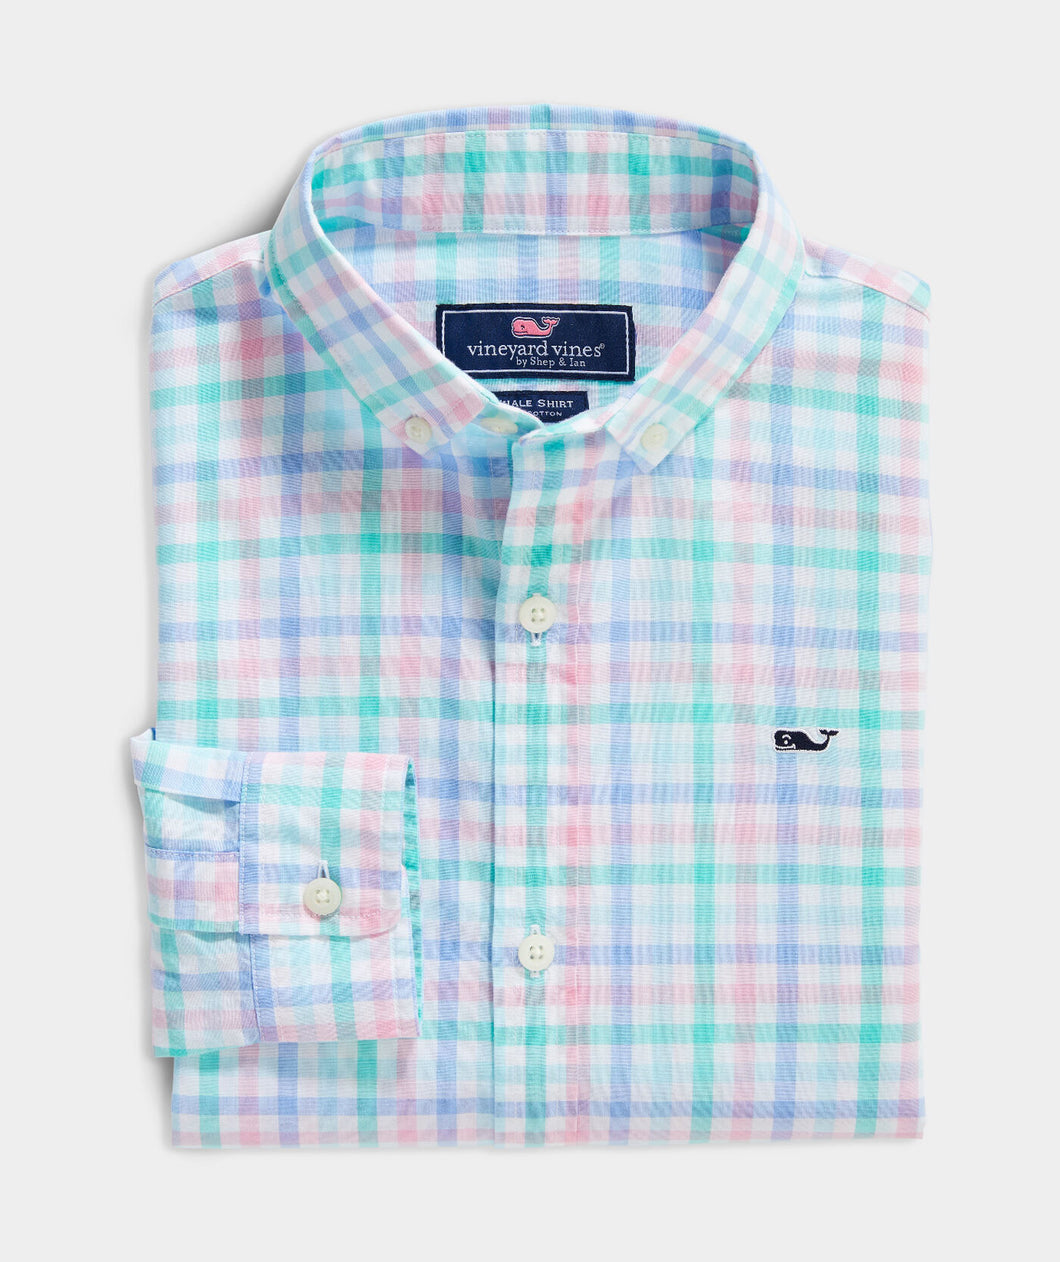 Vineyard Vines - Boys' Palm Beach Poplin Plaid Whale Button-Down Shirt